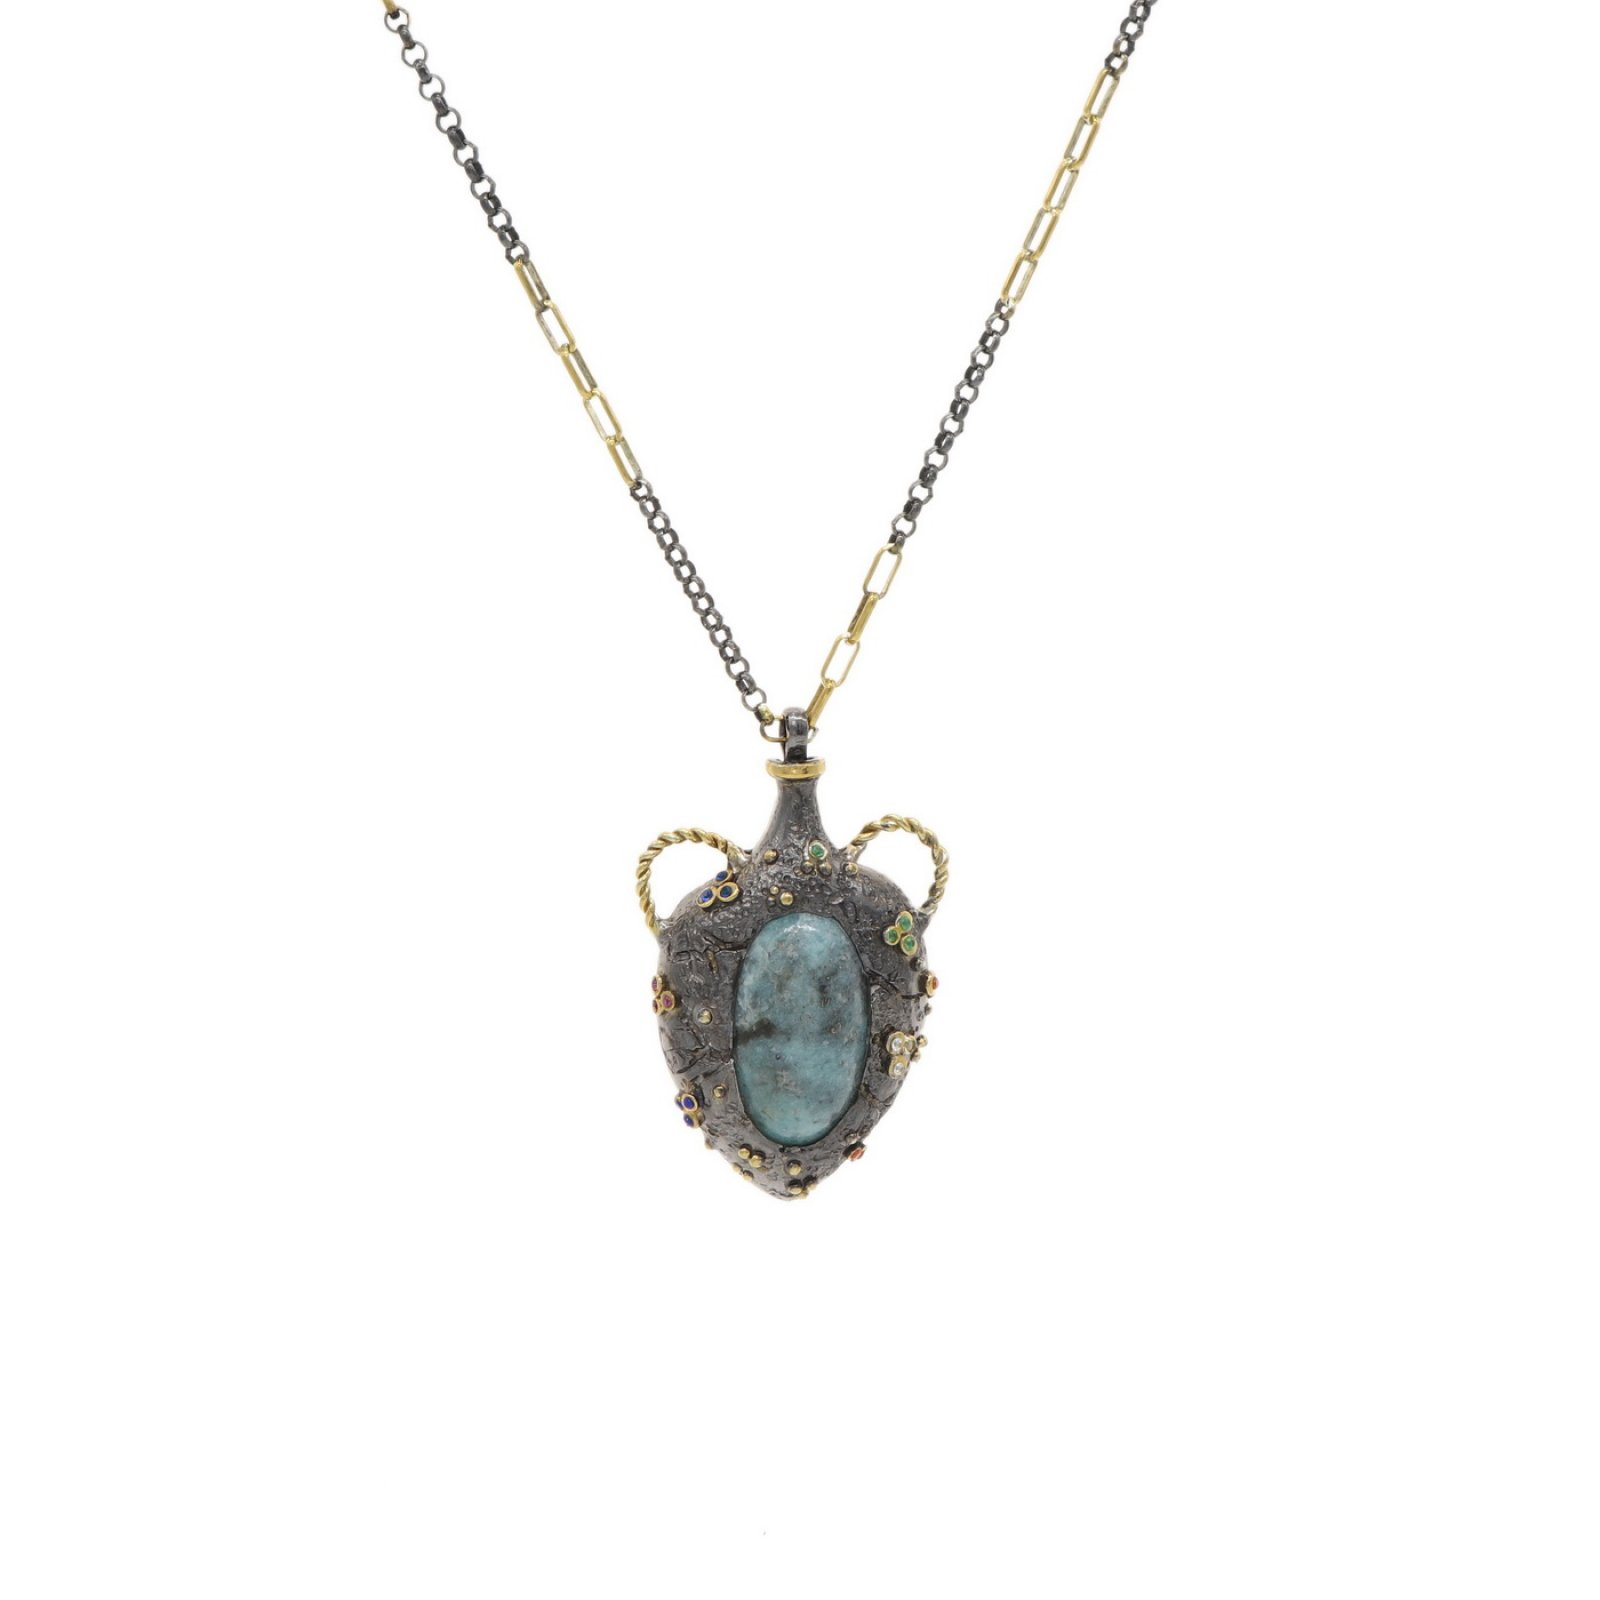 Cruse Pendant With Turquoise Stone